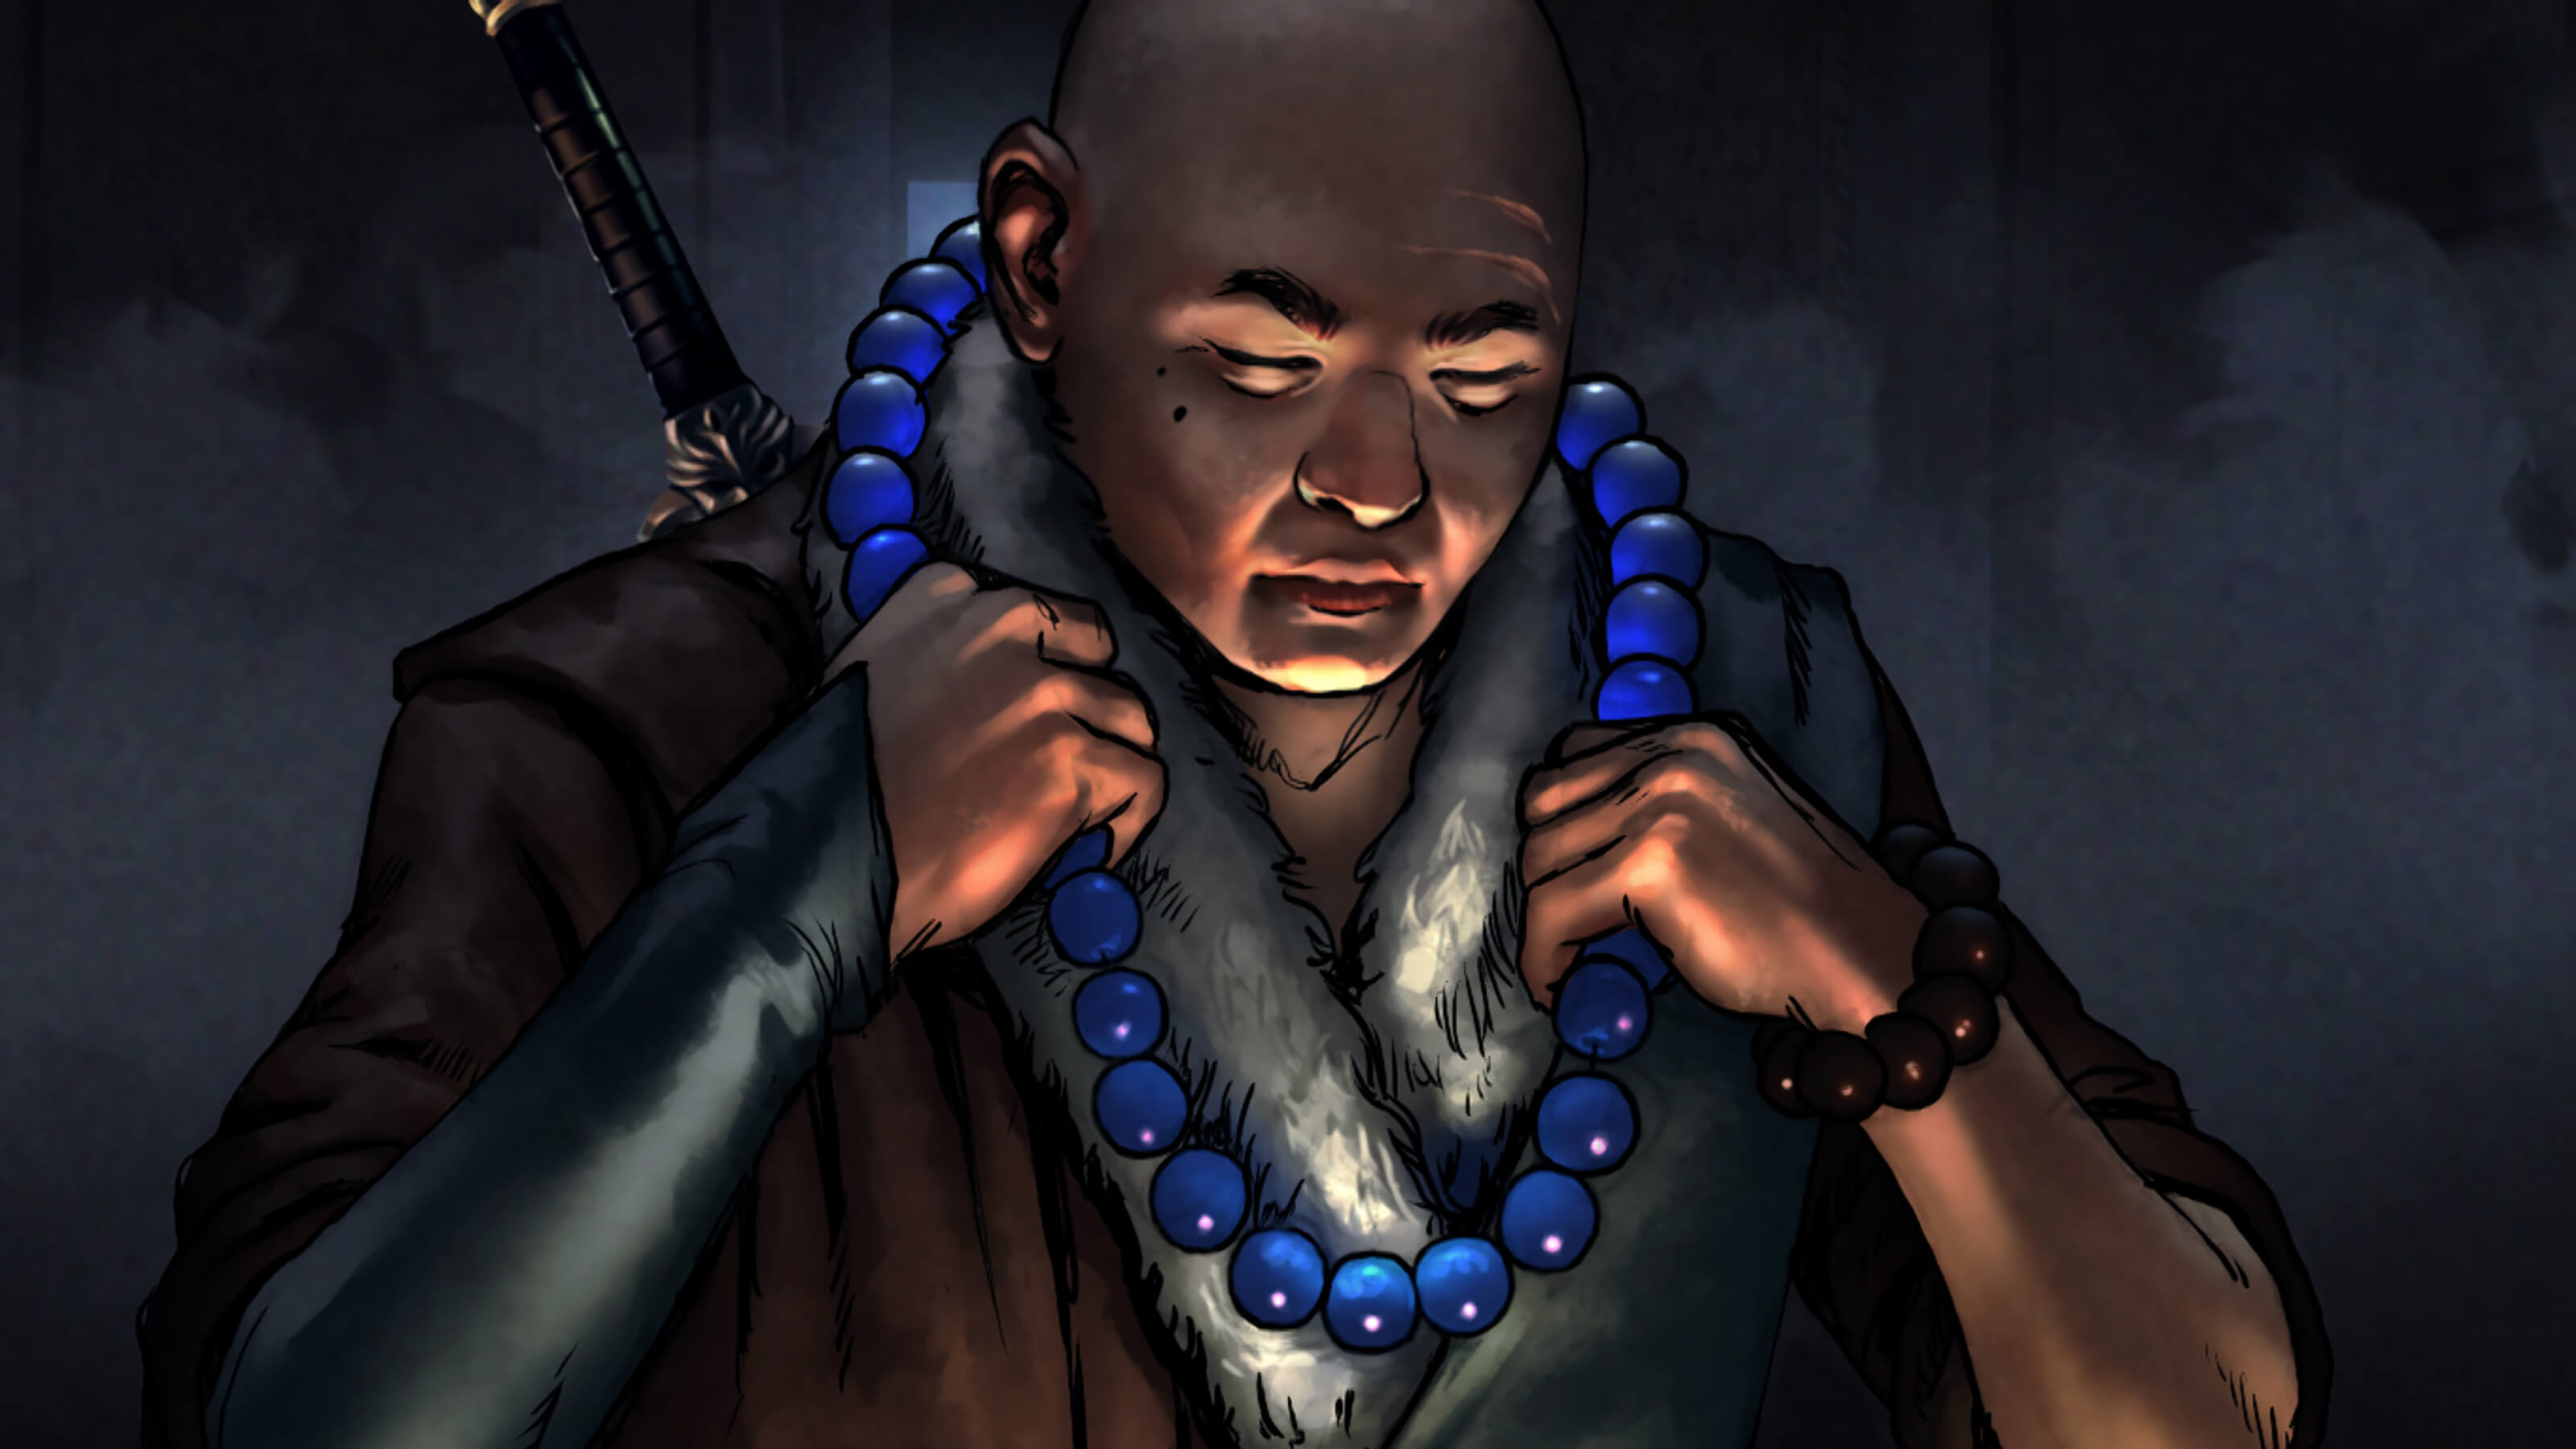 A bald man with a sword on his back, lit from below, puts on a necklace of brilliant blue spheres in a darkened room